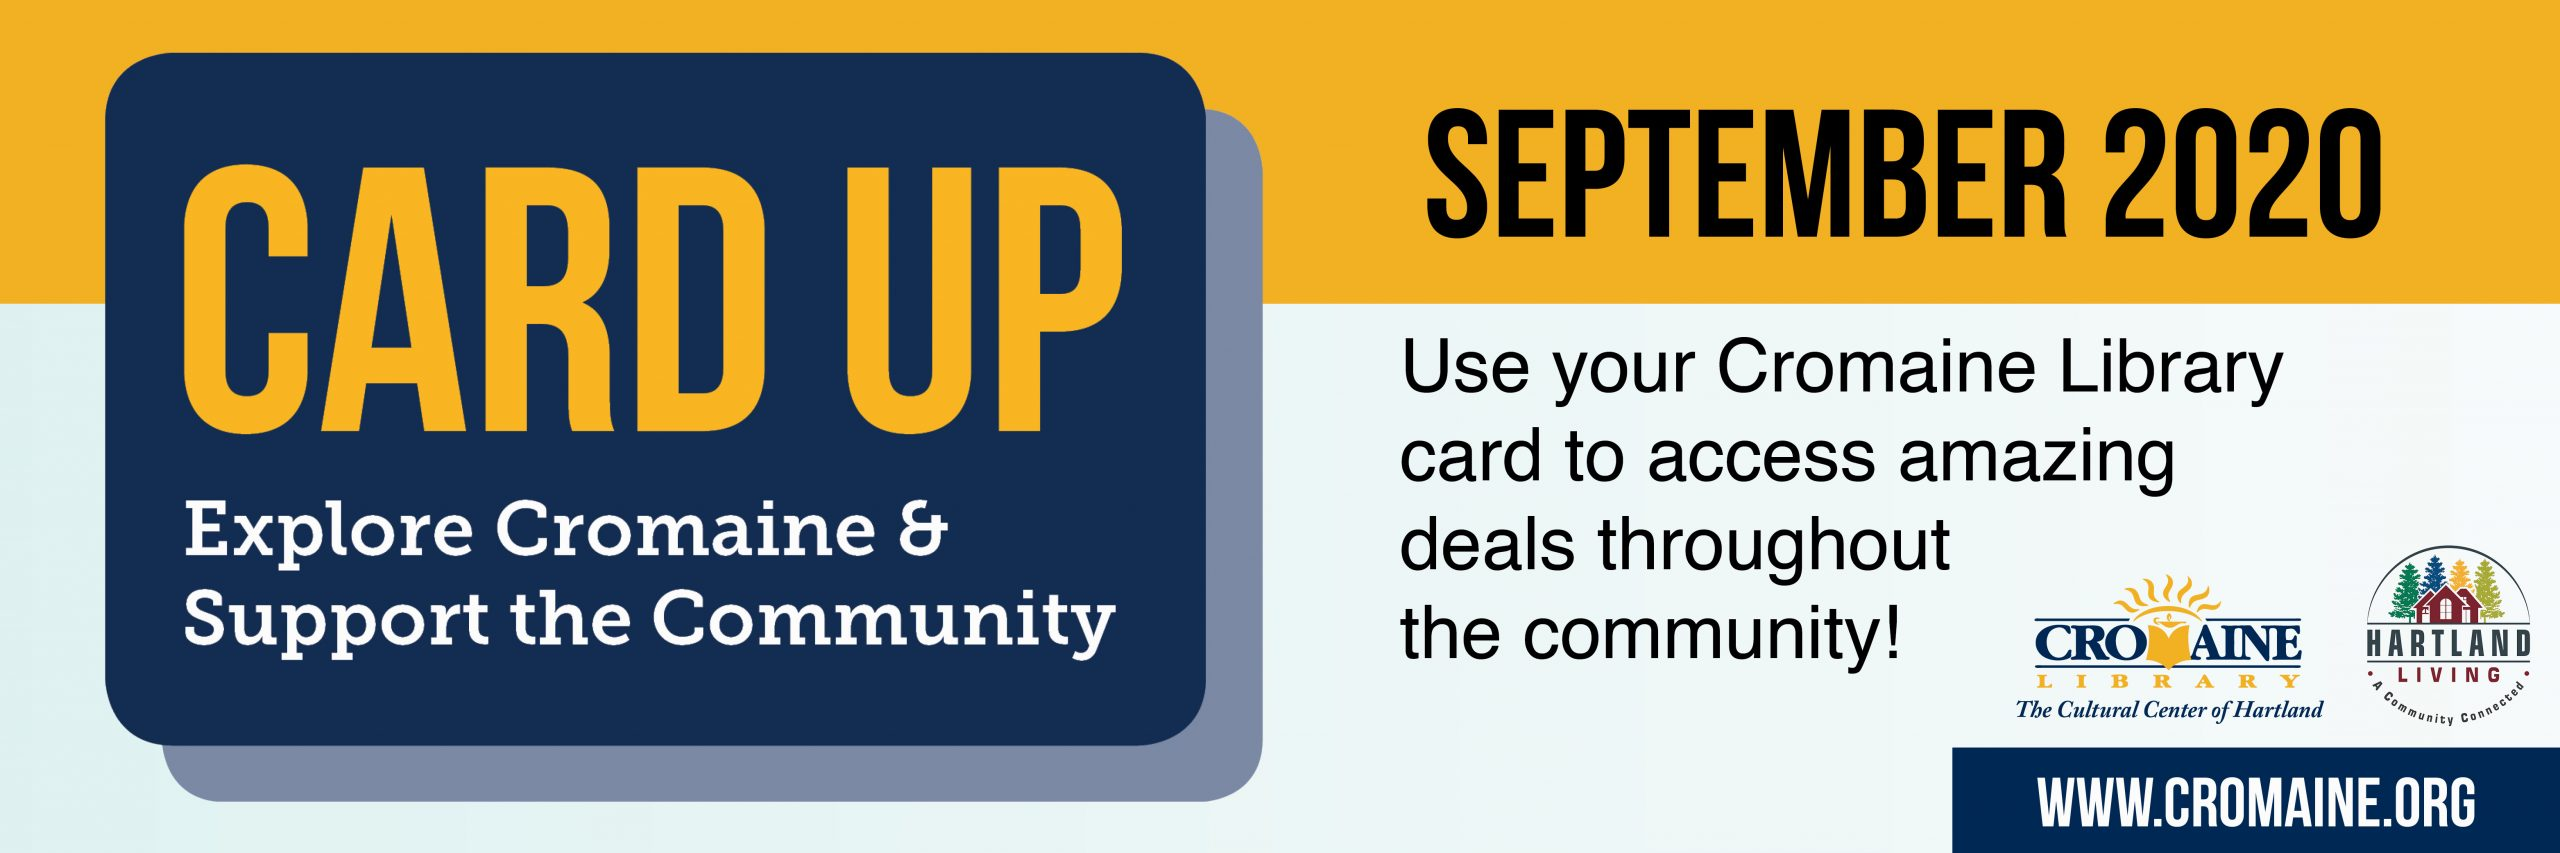 Card Up to Explore Cromaine and Support the Community